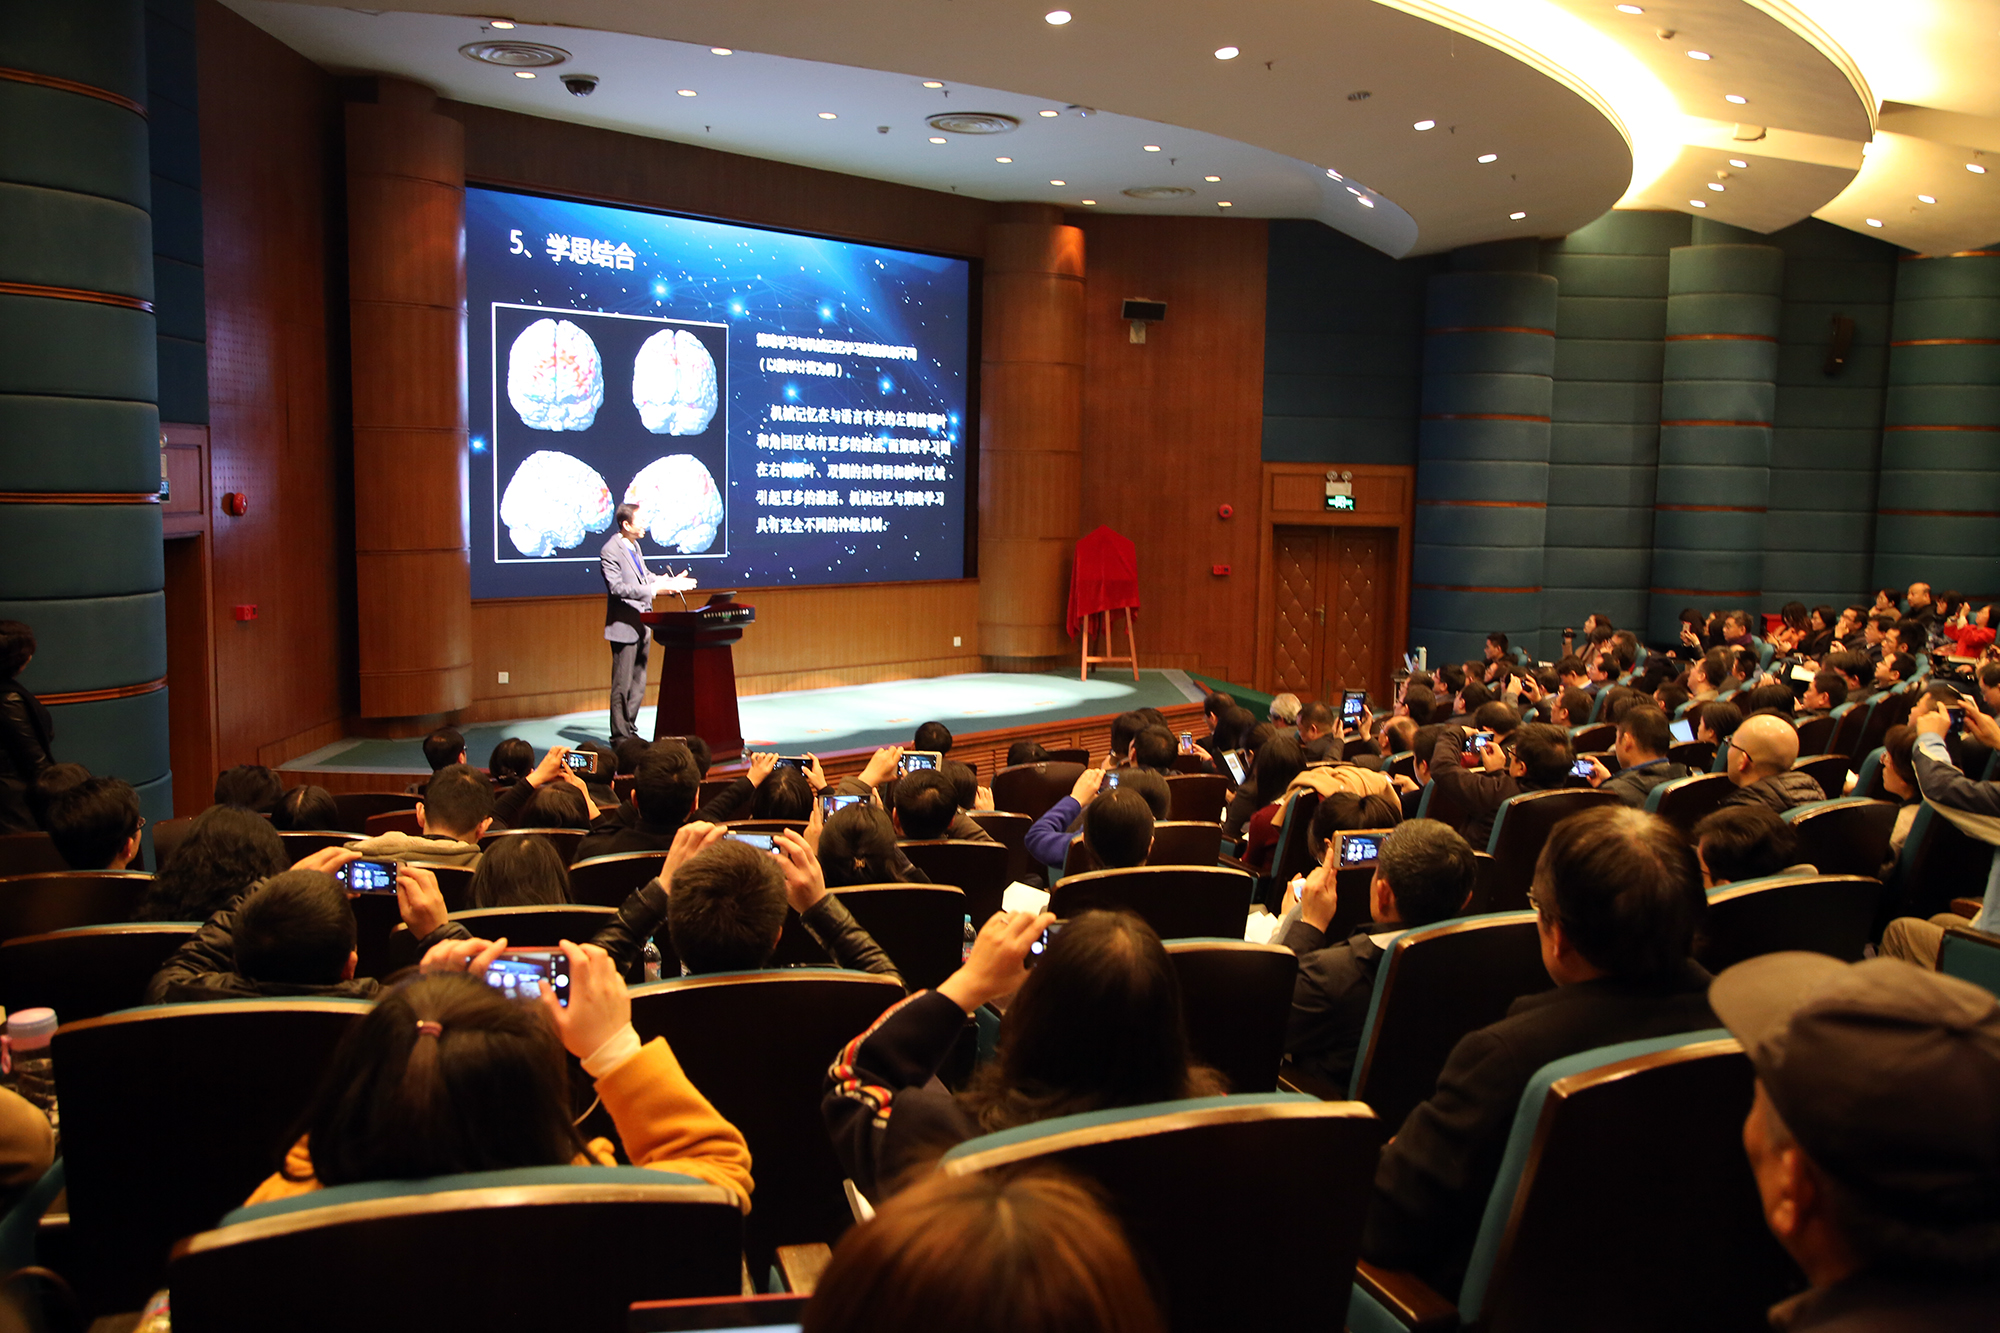 Brain science project launched